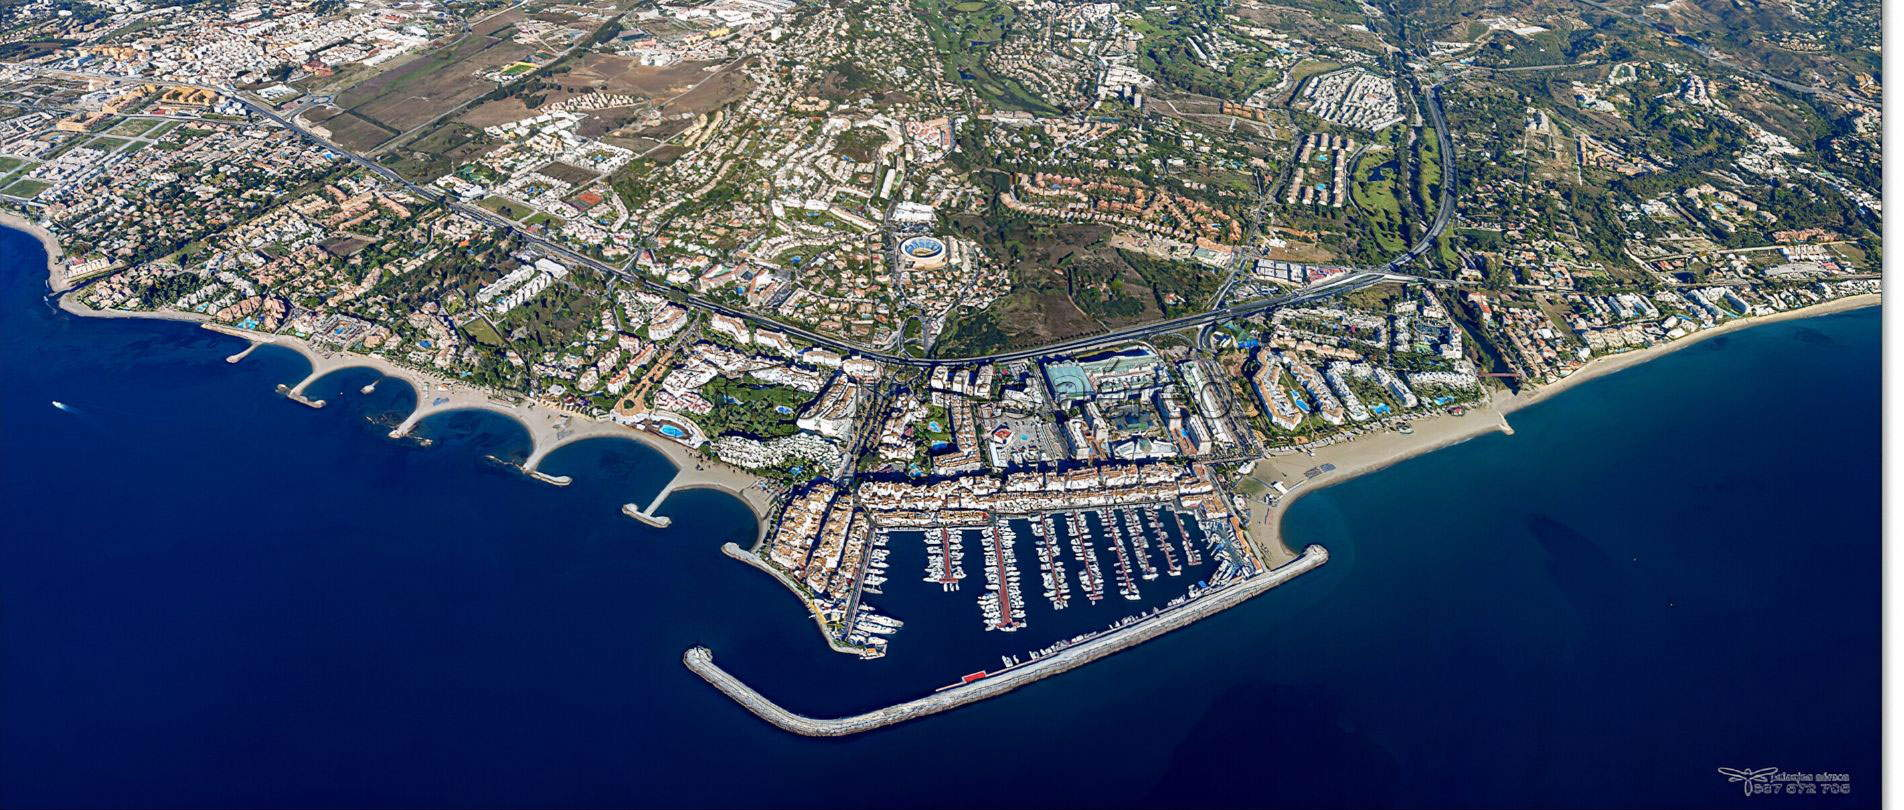 aerial image of port banus marbella